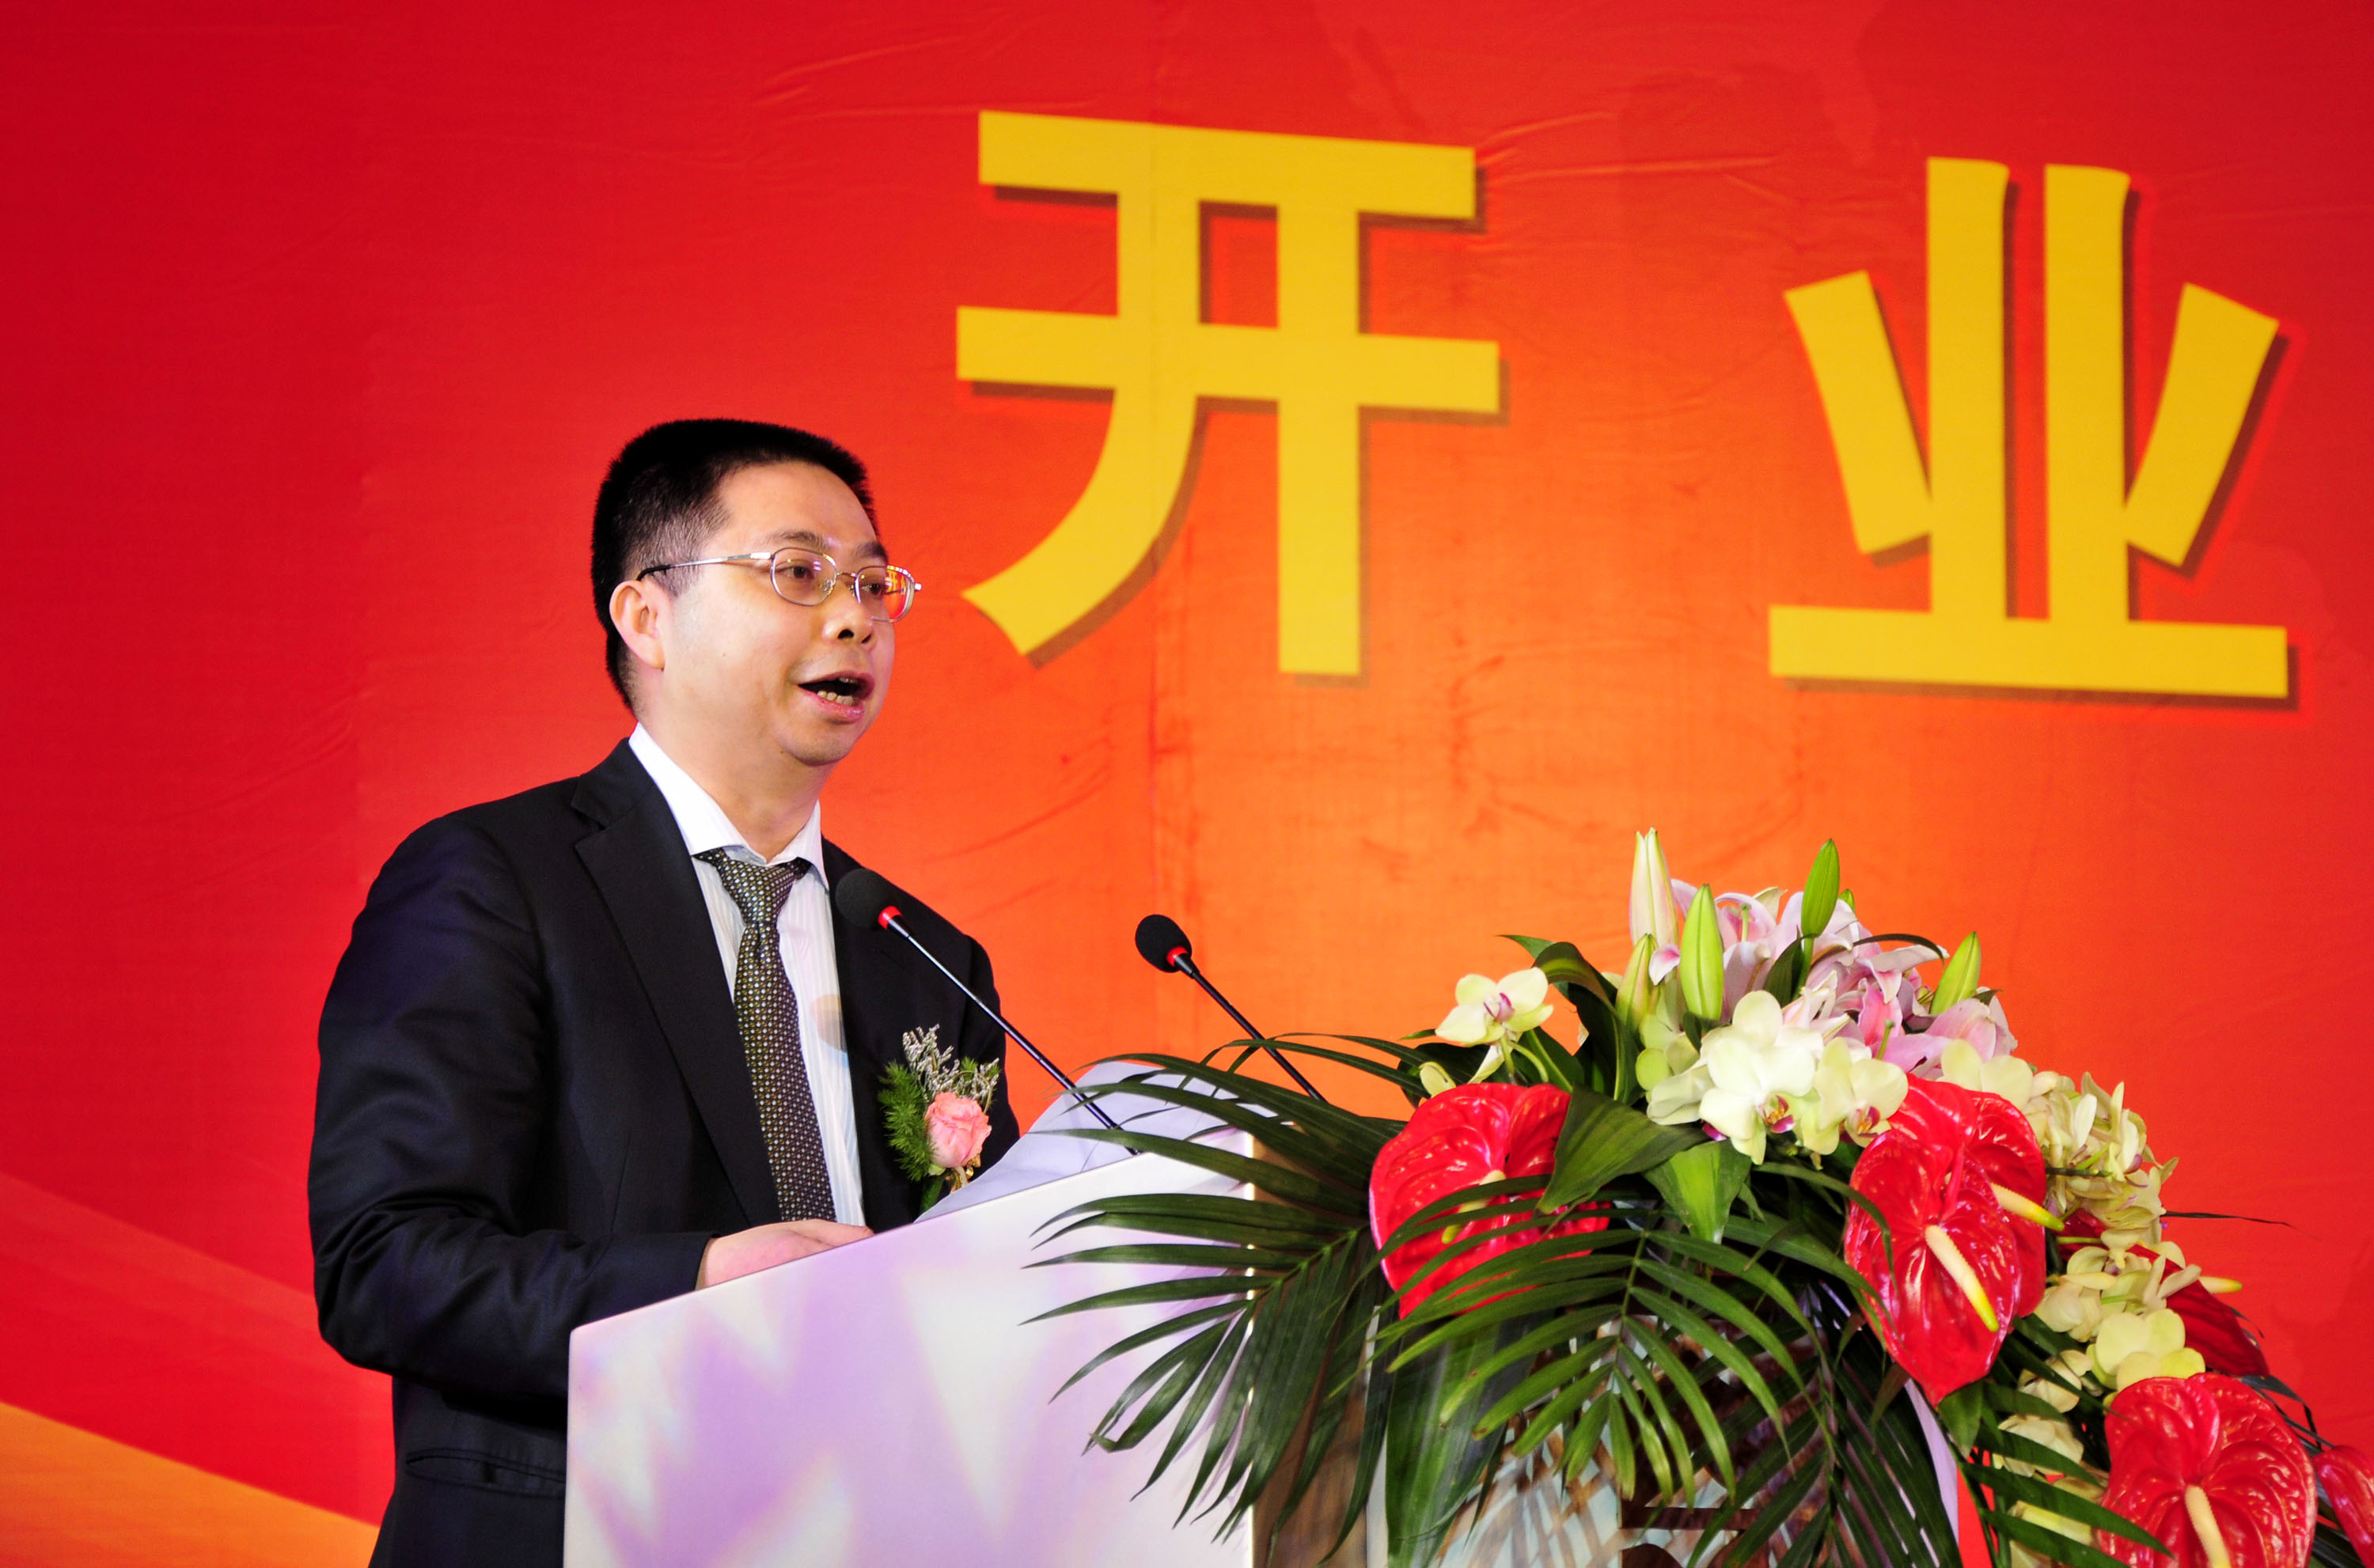 Yao Zhenhua, Chairman of Qian Hai Life Insurance and Chairman of Baoneng Group, delivers a speech in Shenzhen city, south China's Guangdong province, March 30, 2012.